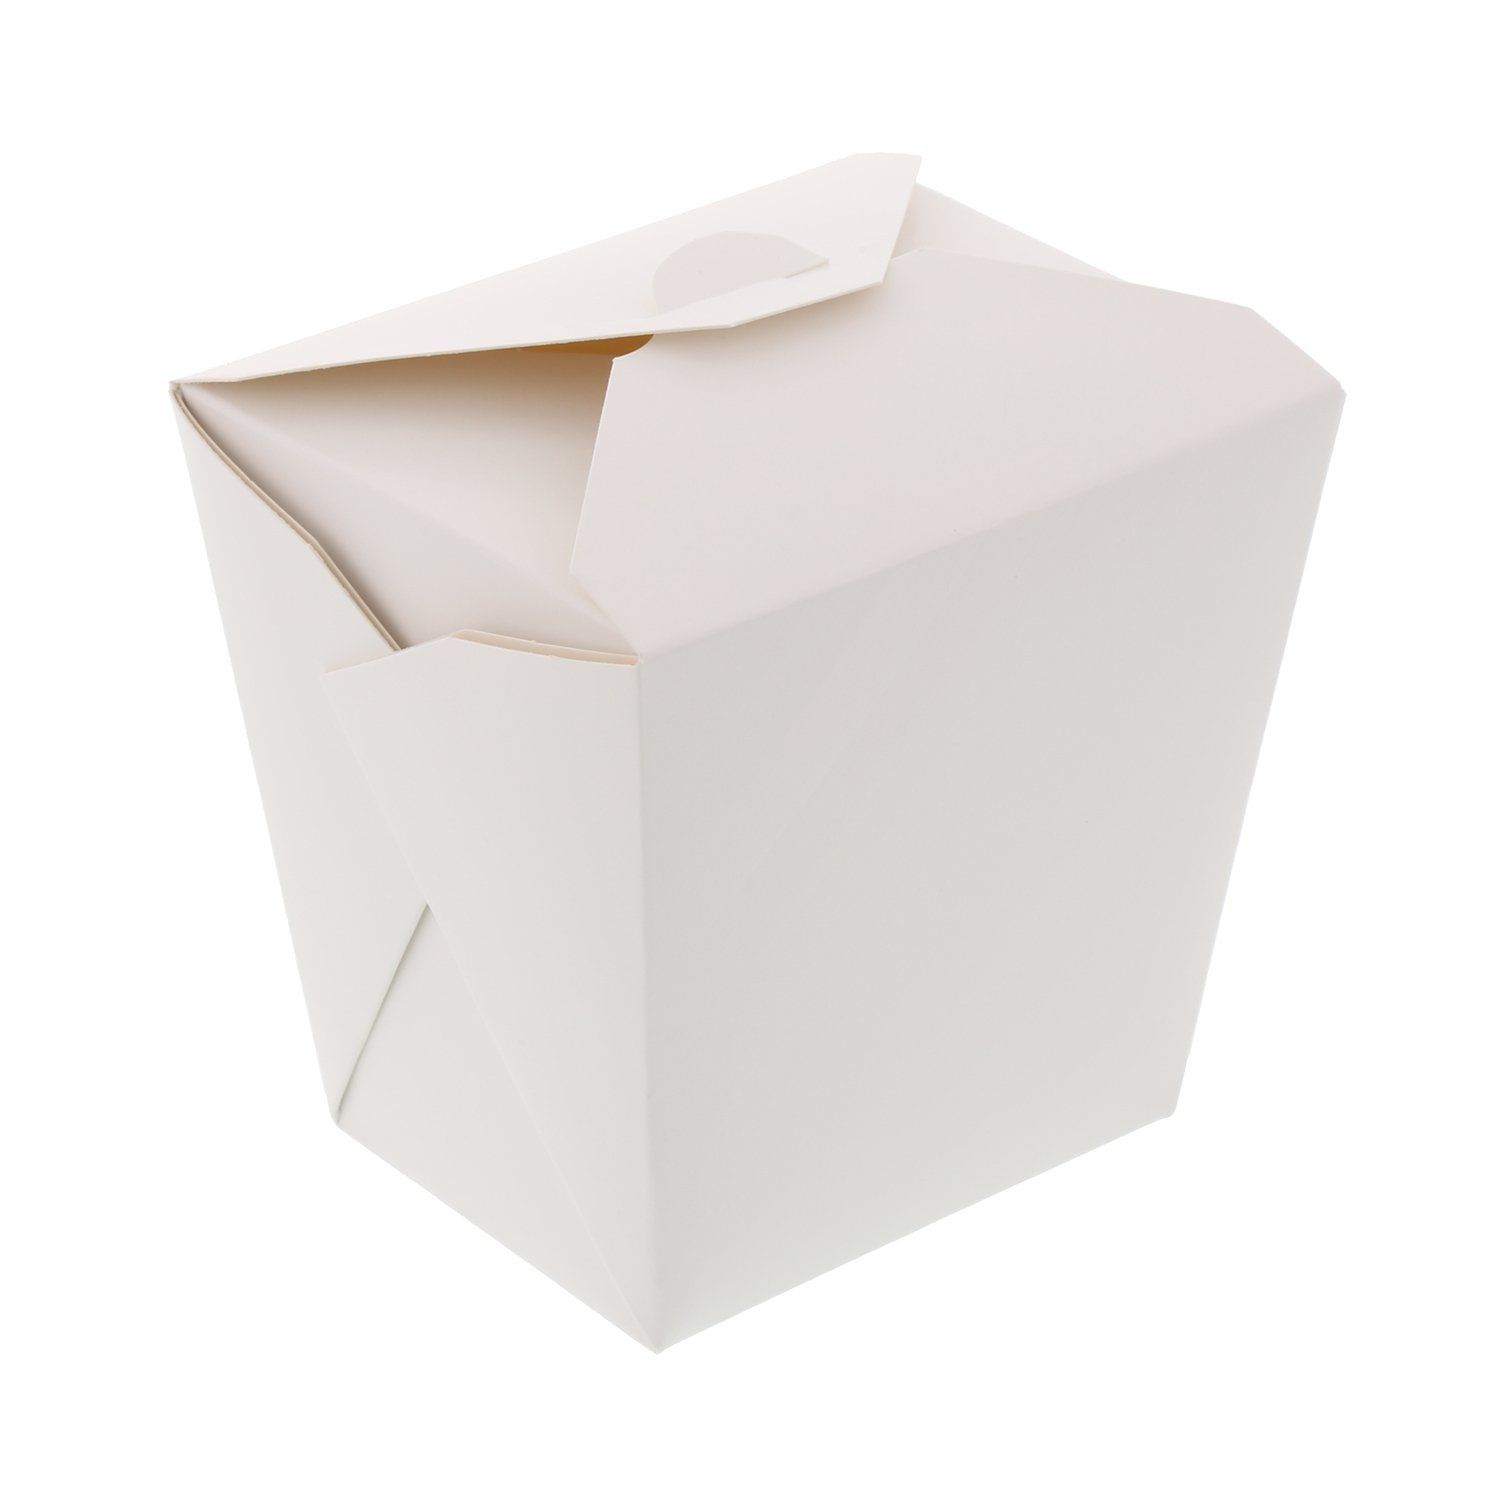 CiboWares White 32 Oz Folded Square Bottom Take-Out Containers, Case of 450 by CiboWares